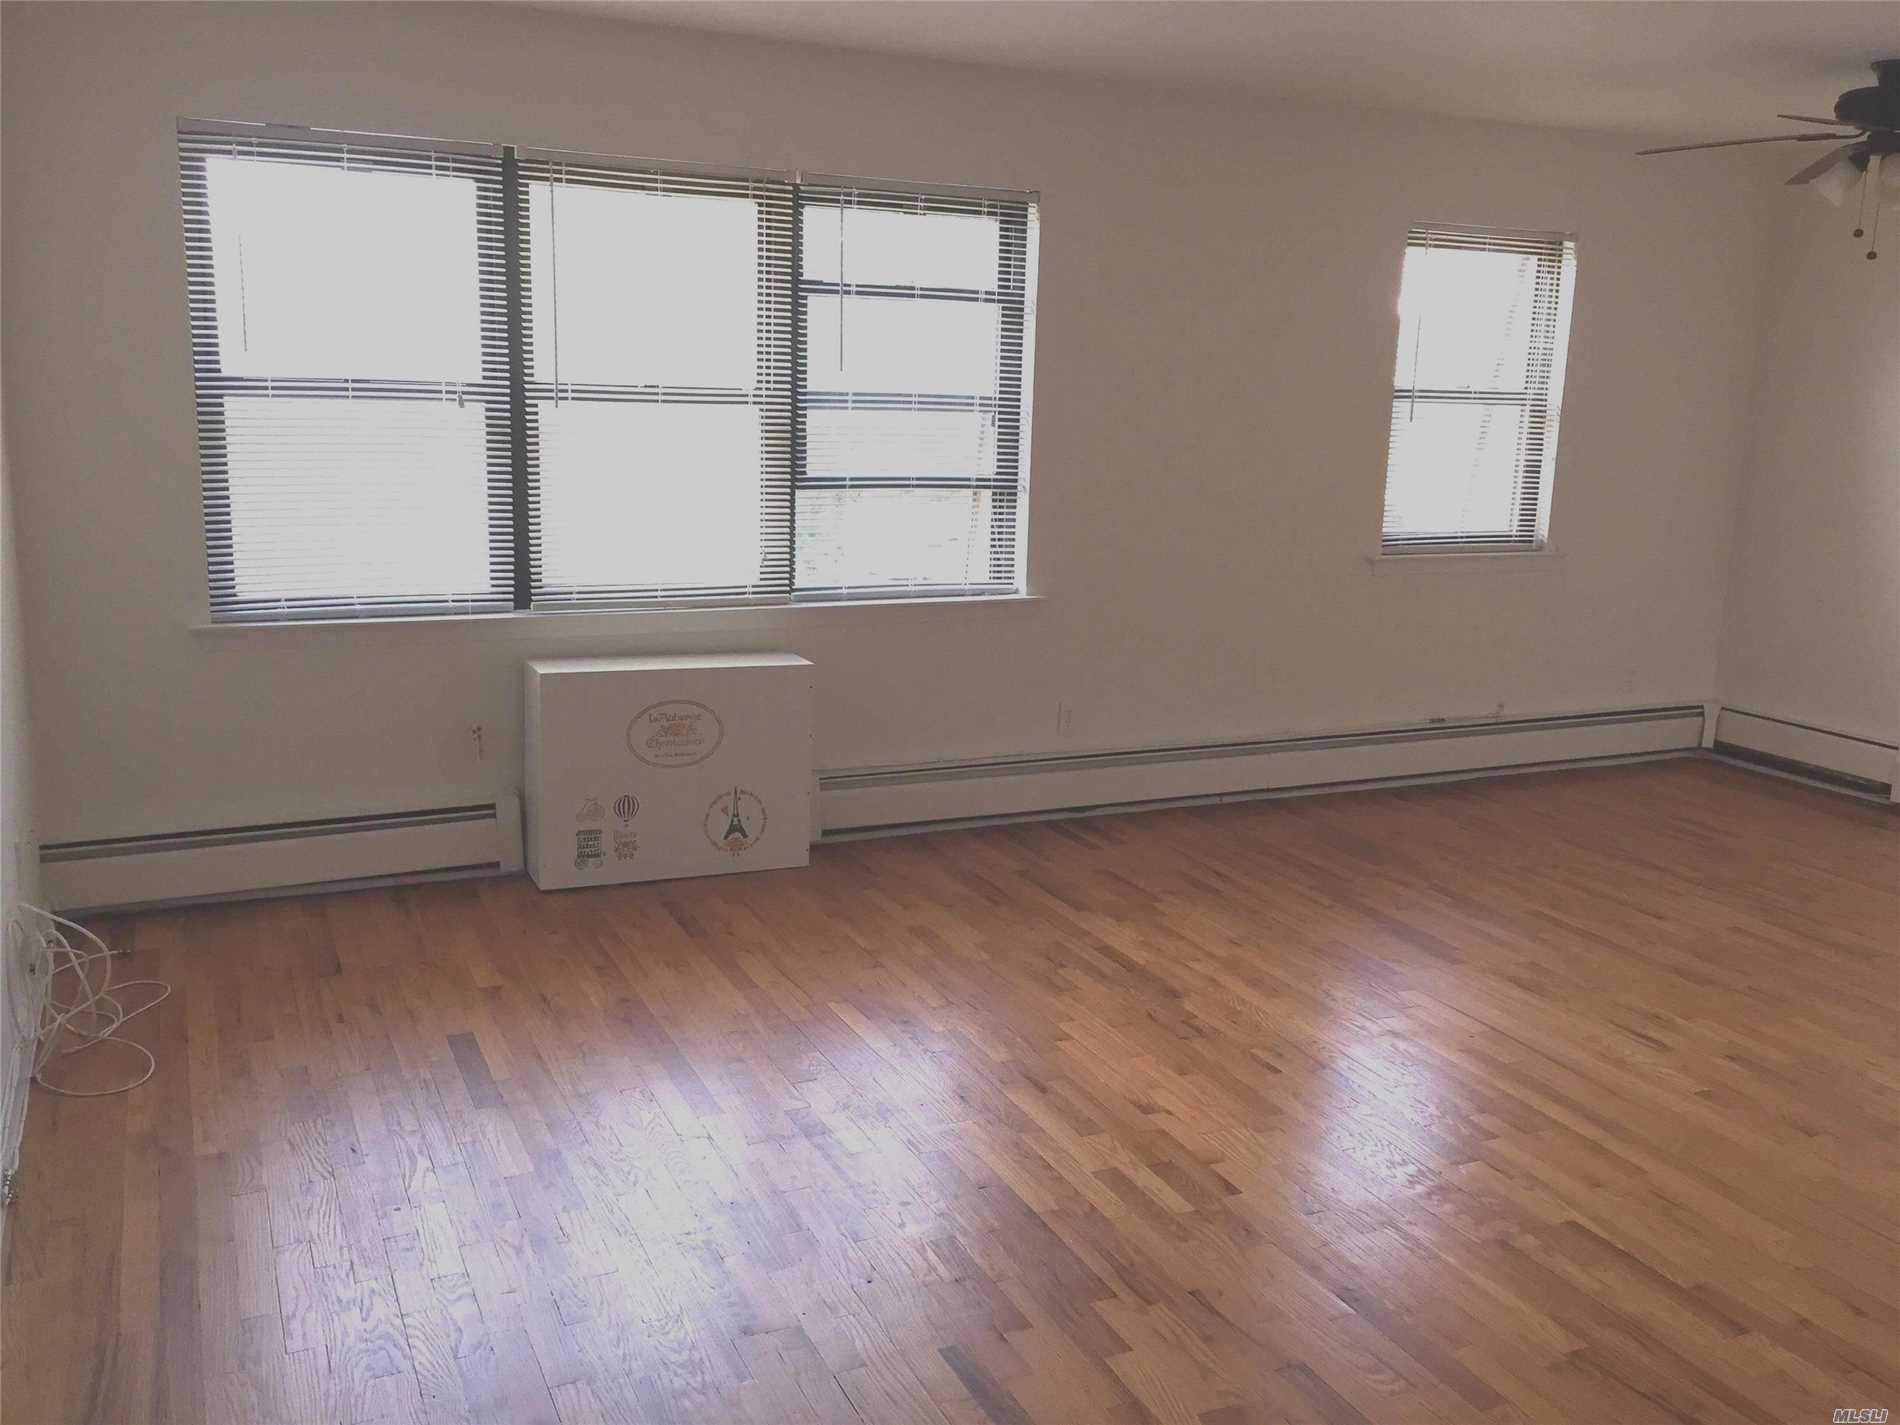 Clean, Spacious, Bright, 2 Family Condo, Wood Floors Throughout The Apartment, Close To Buses, Lie, Schools, Immediate Occupancy.